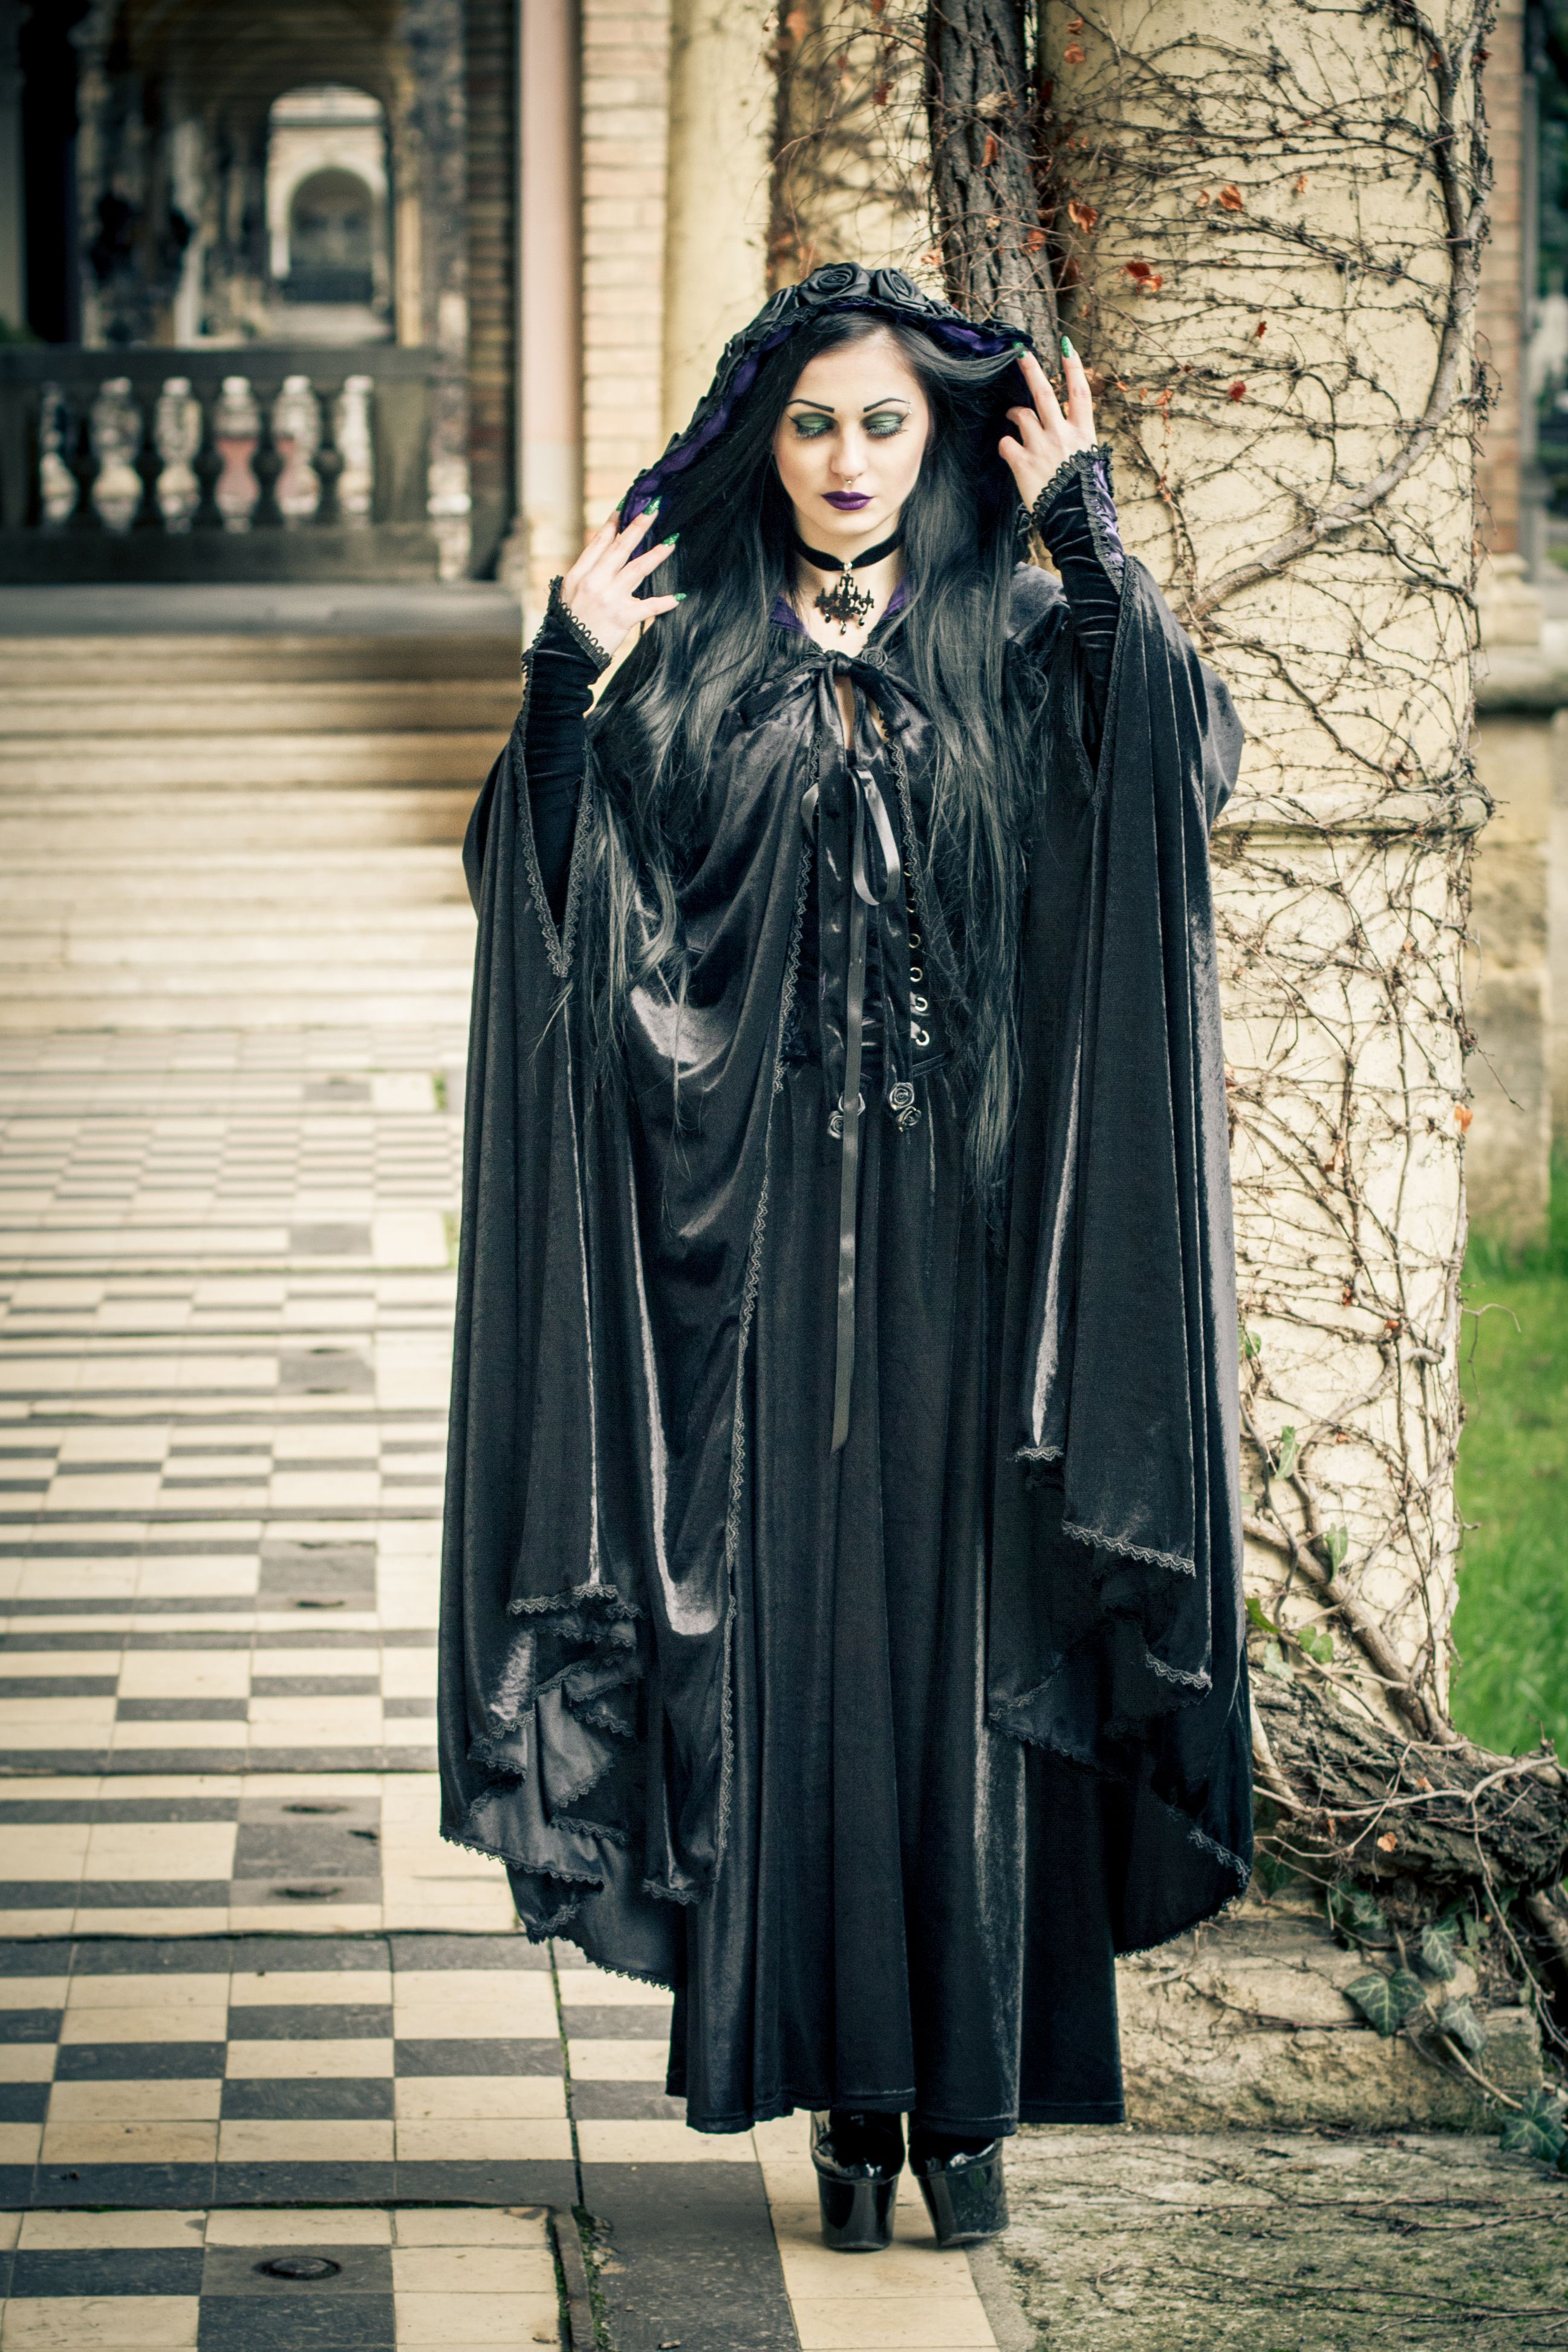 Model lady macbeth photography villy v fashion style gothic